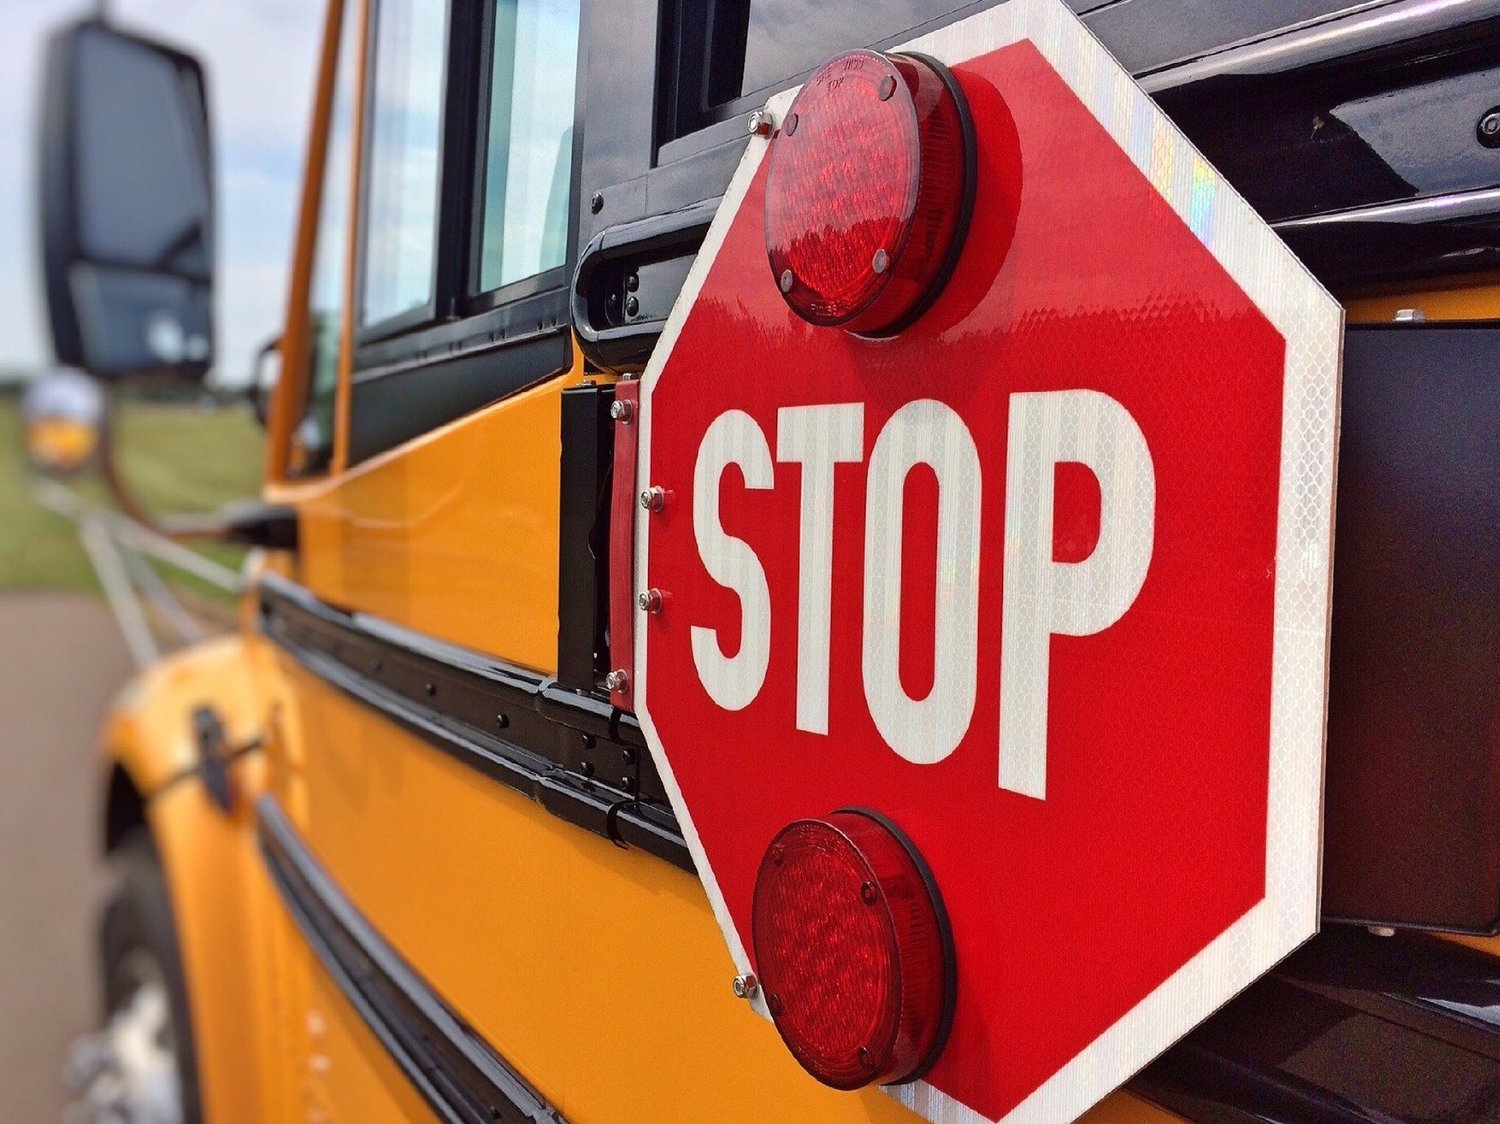 New technology could help the county identify and ticket drivers who pass stopped school buses.